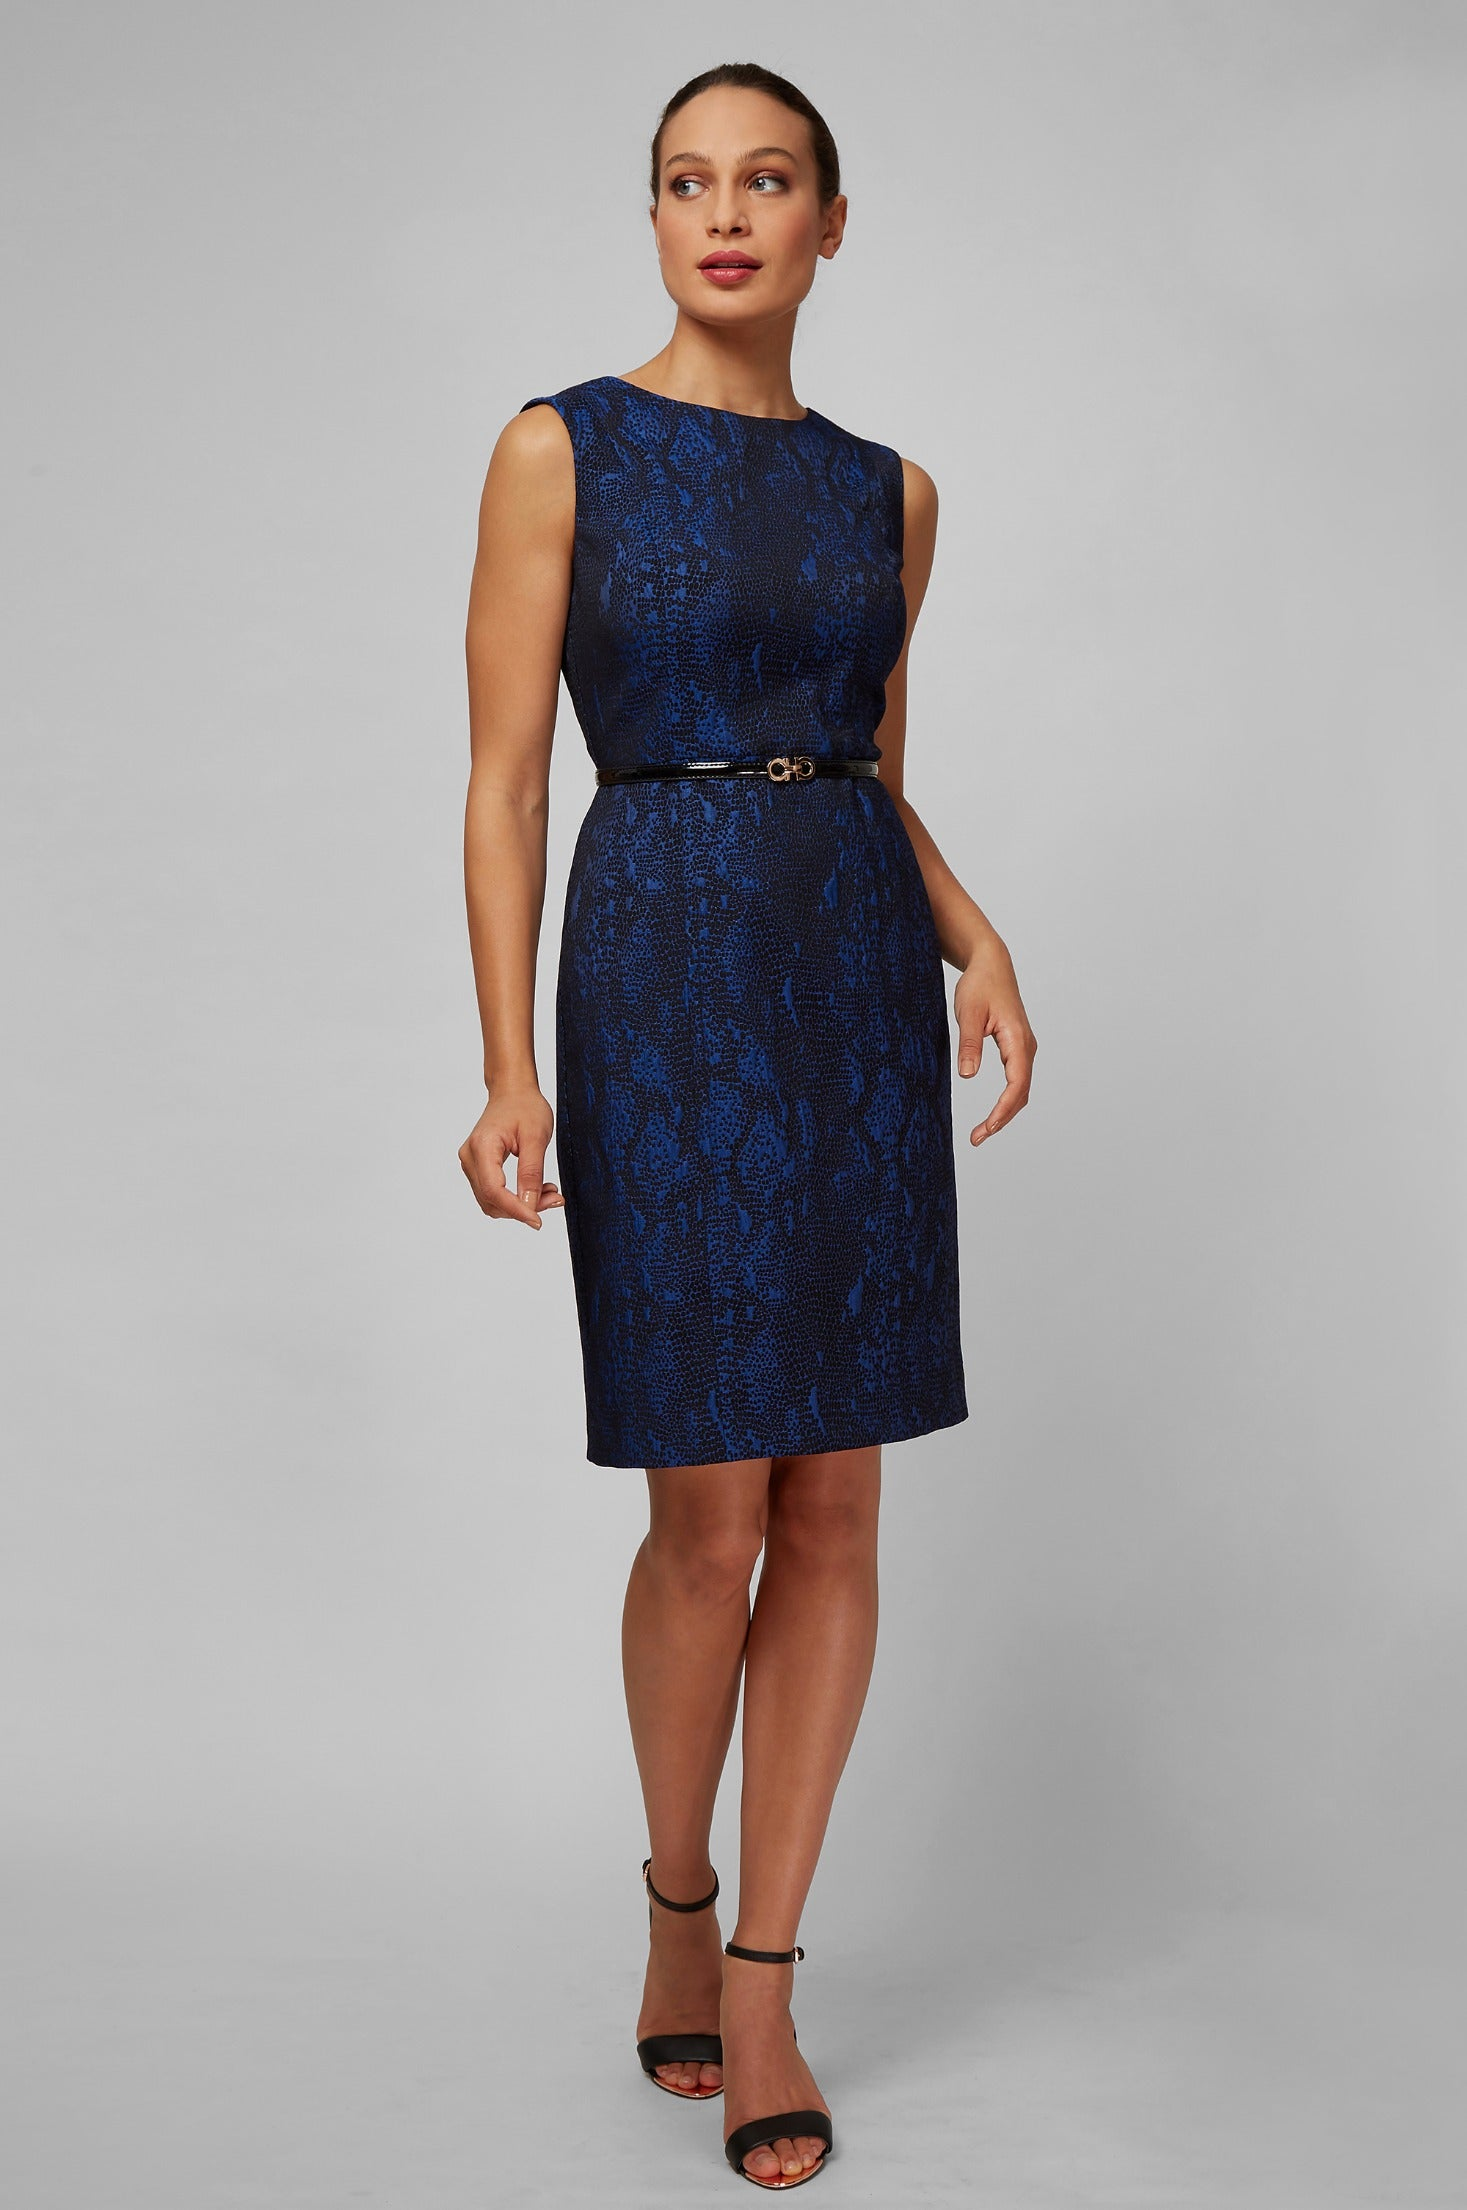 Women's Luna Dress in Blue Viper Jacquard | Nora Gardner Front